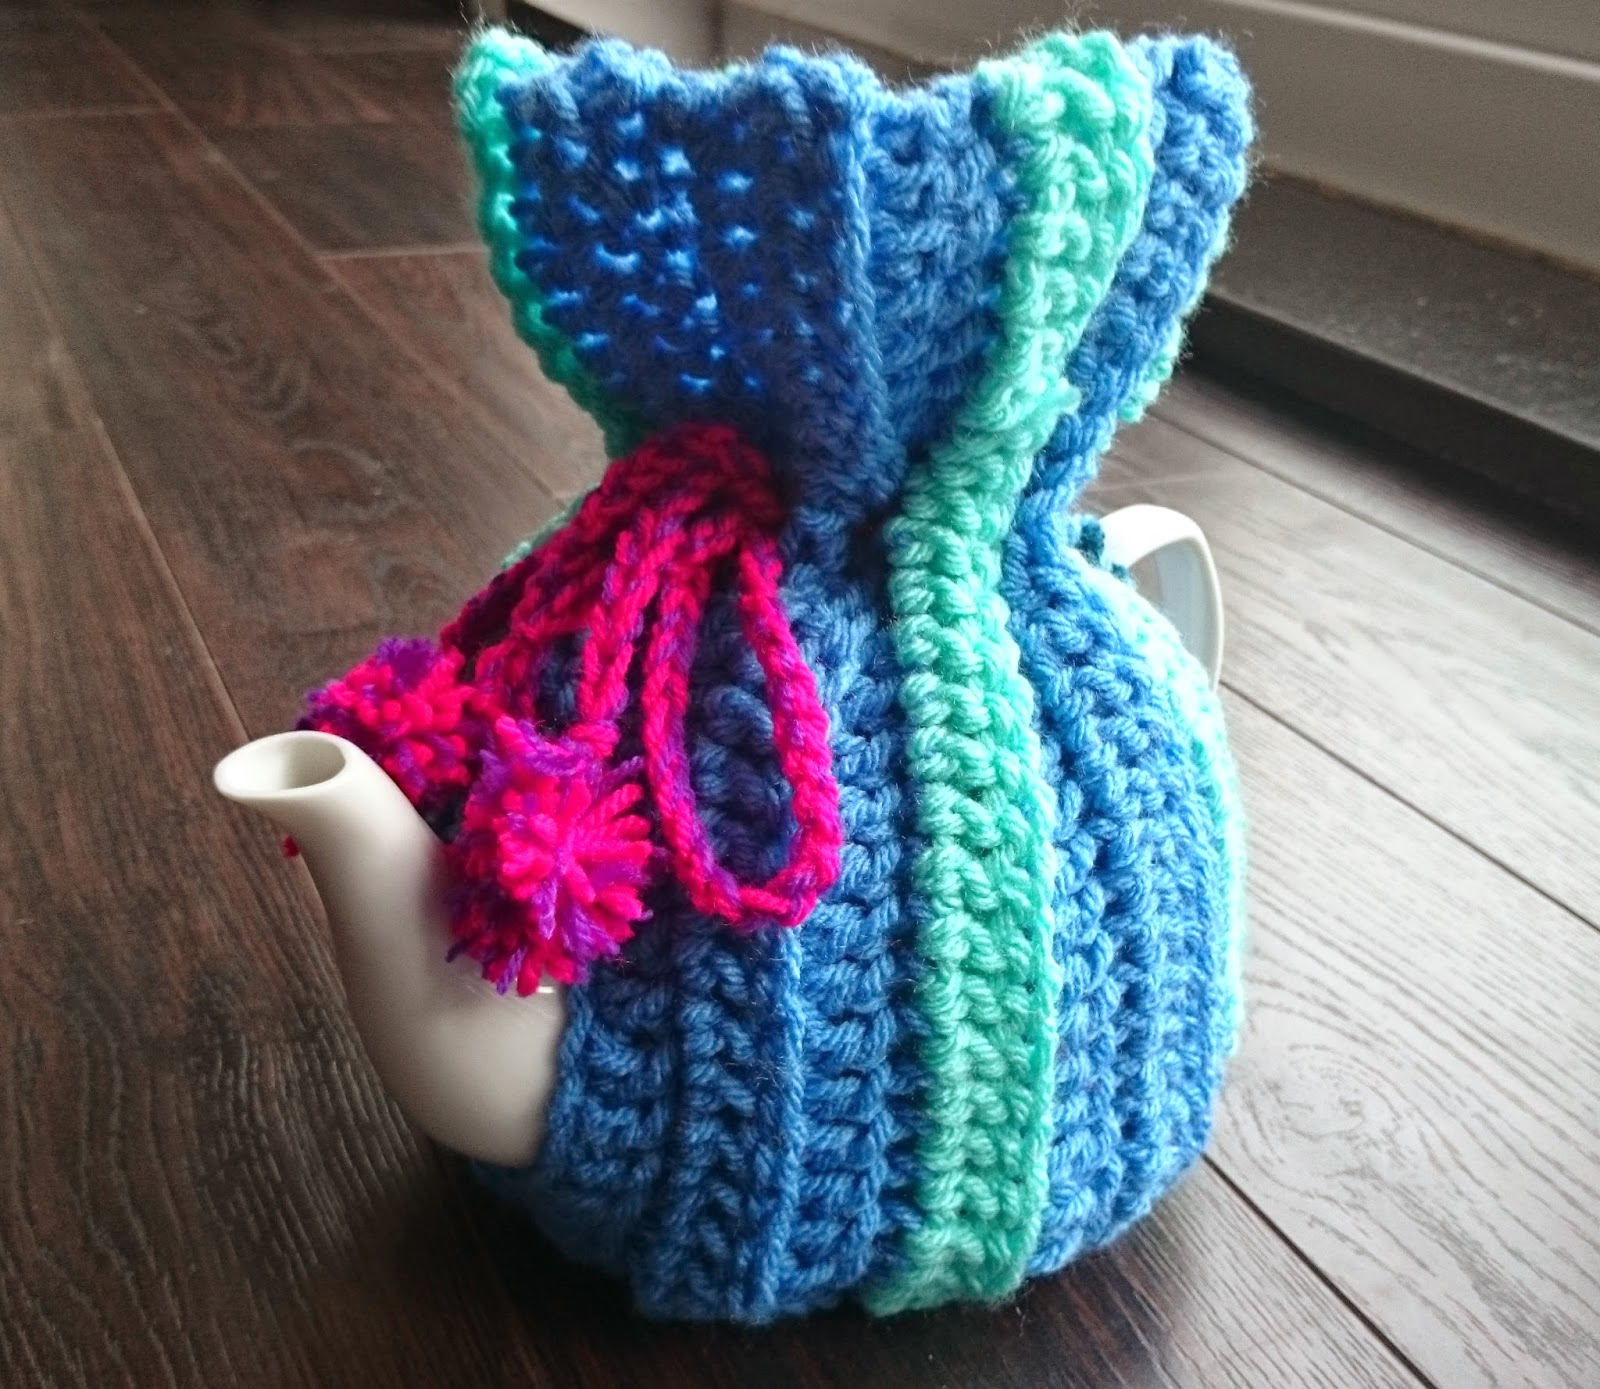 crochet tea cosy teapot handmade blue green pink purple yarn wool